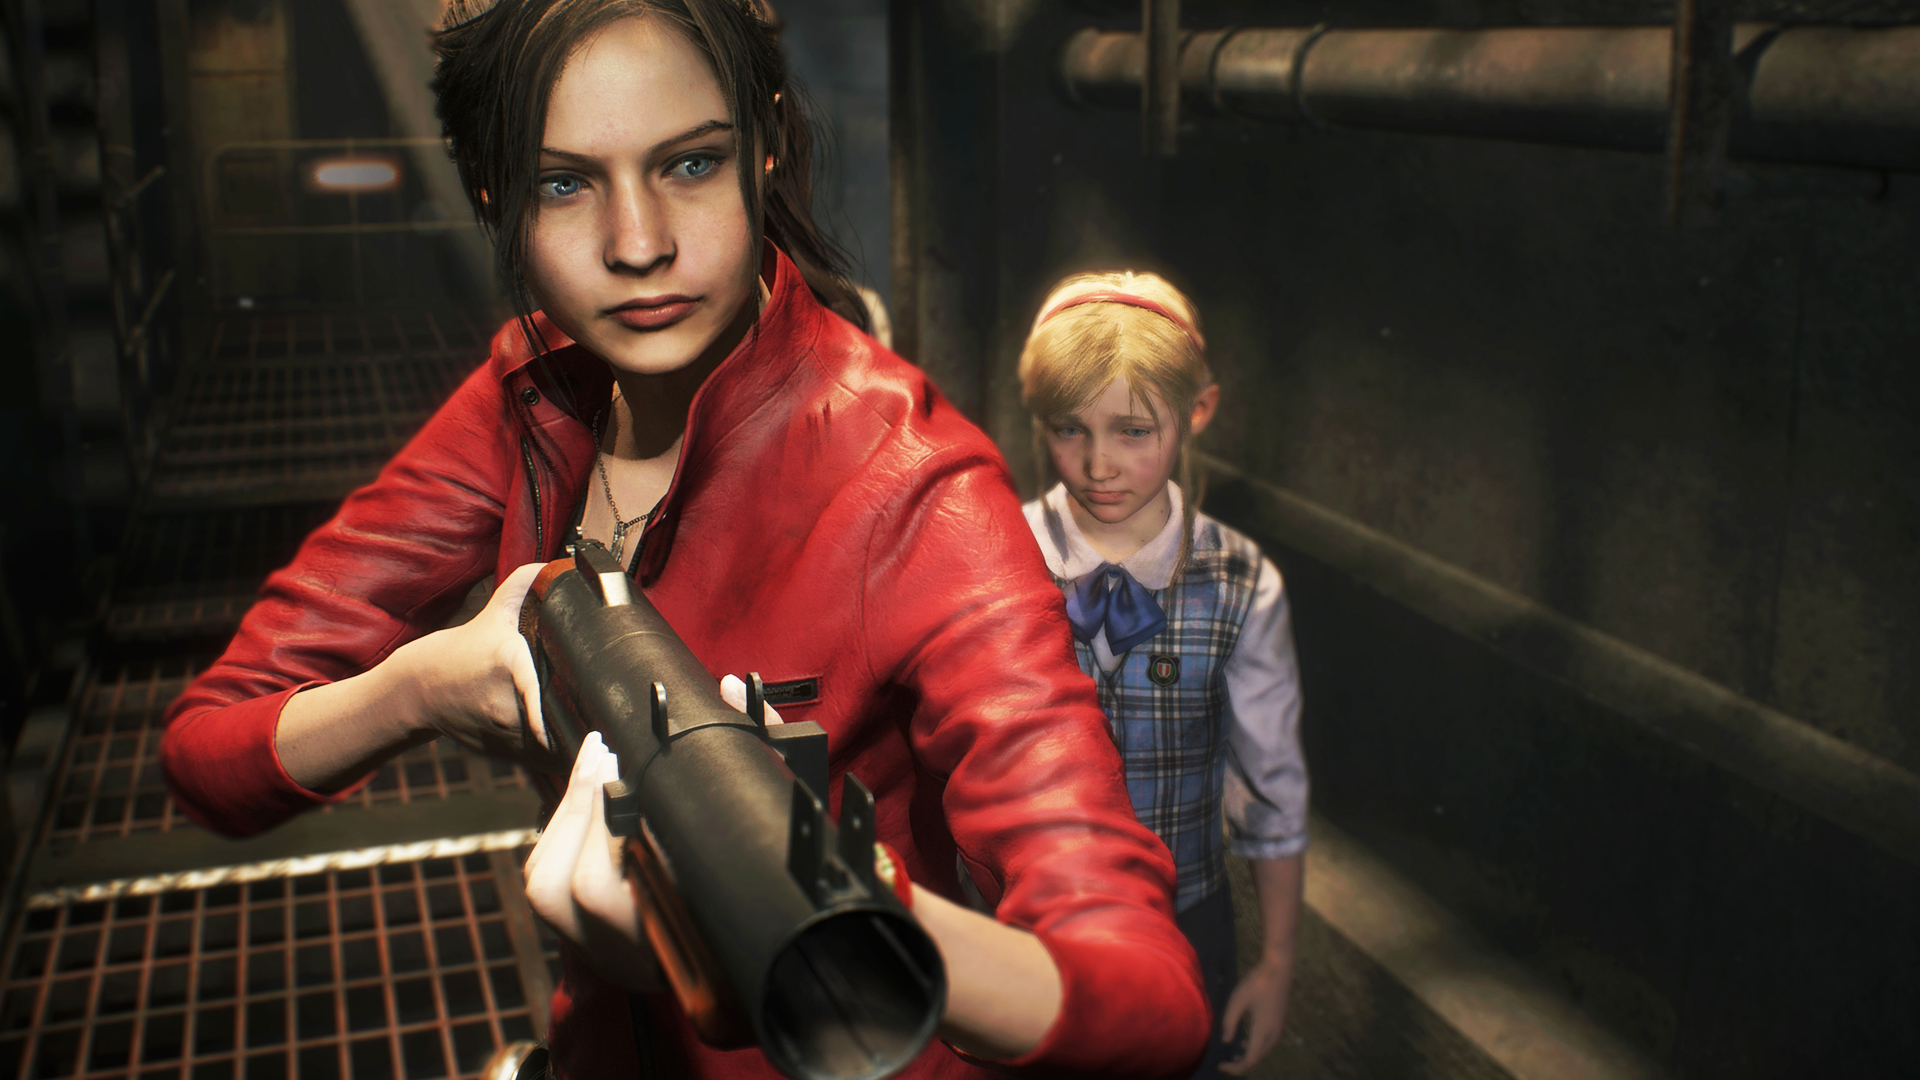 Resident Evil 2: Remake locker codes, safe codes guide: How to